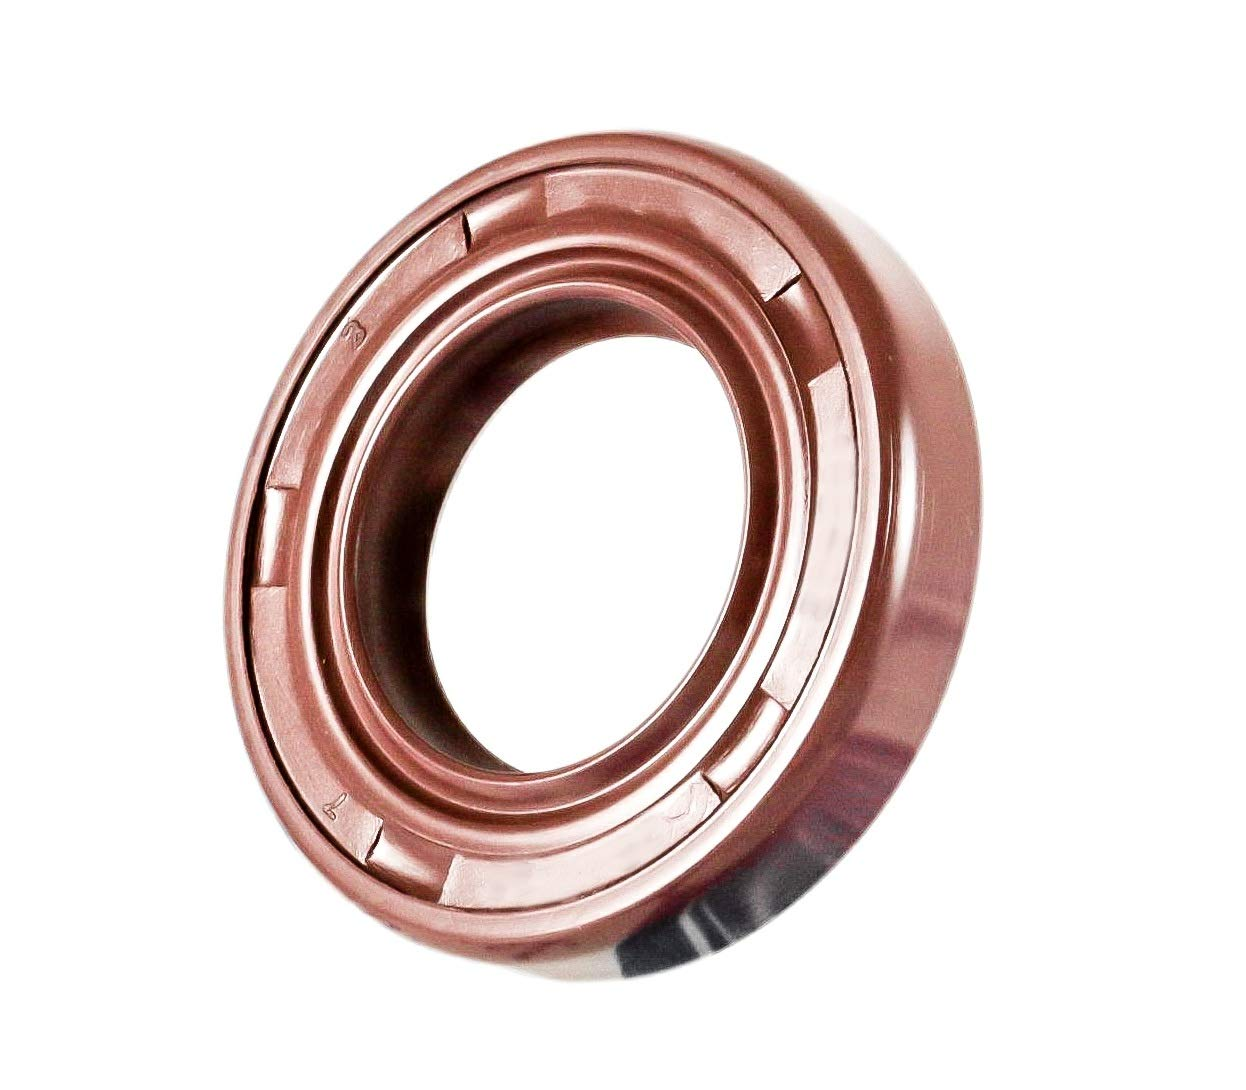 EAI VITON Oil Seal Cheap mail order sales 22mm X 32mm S 5mm TC Sales of SALE items from new works Stainless Double Lip w